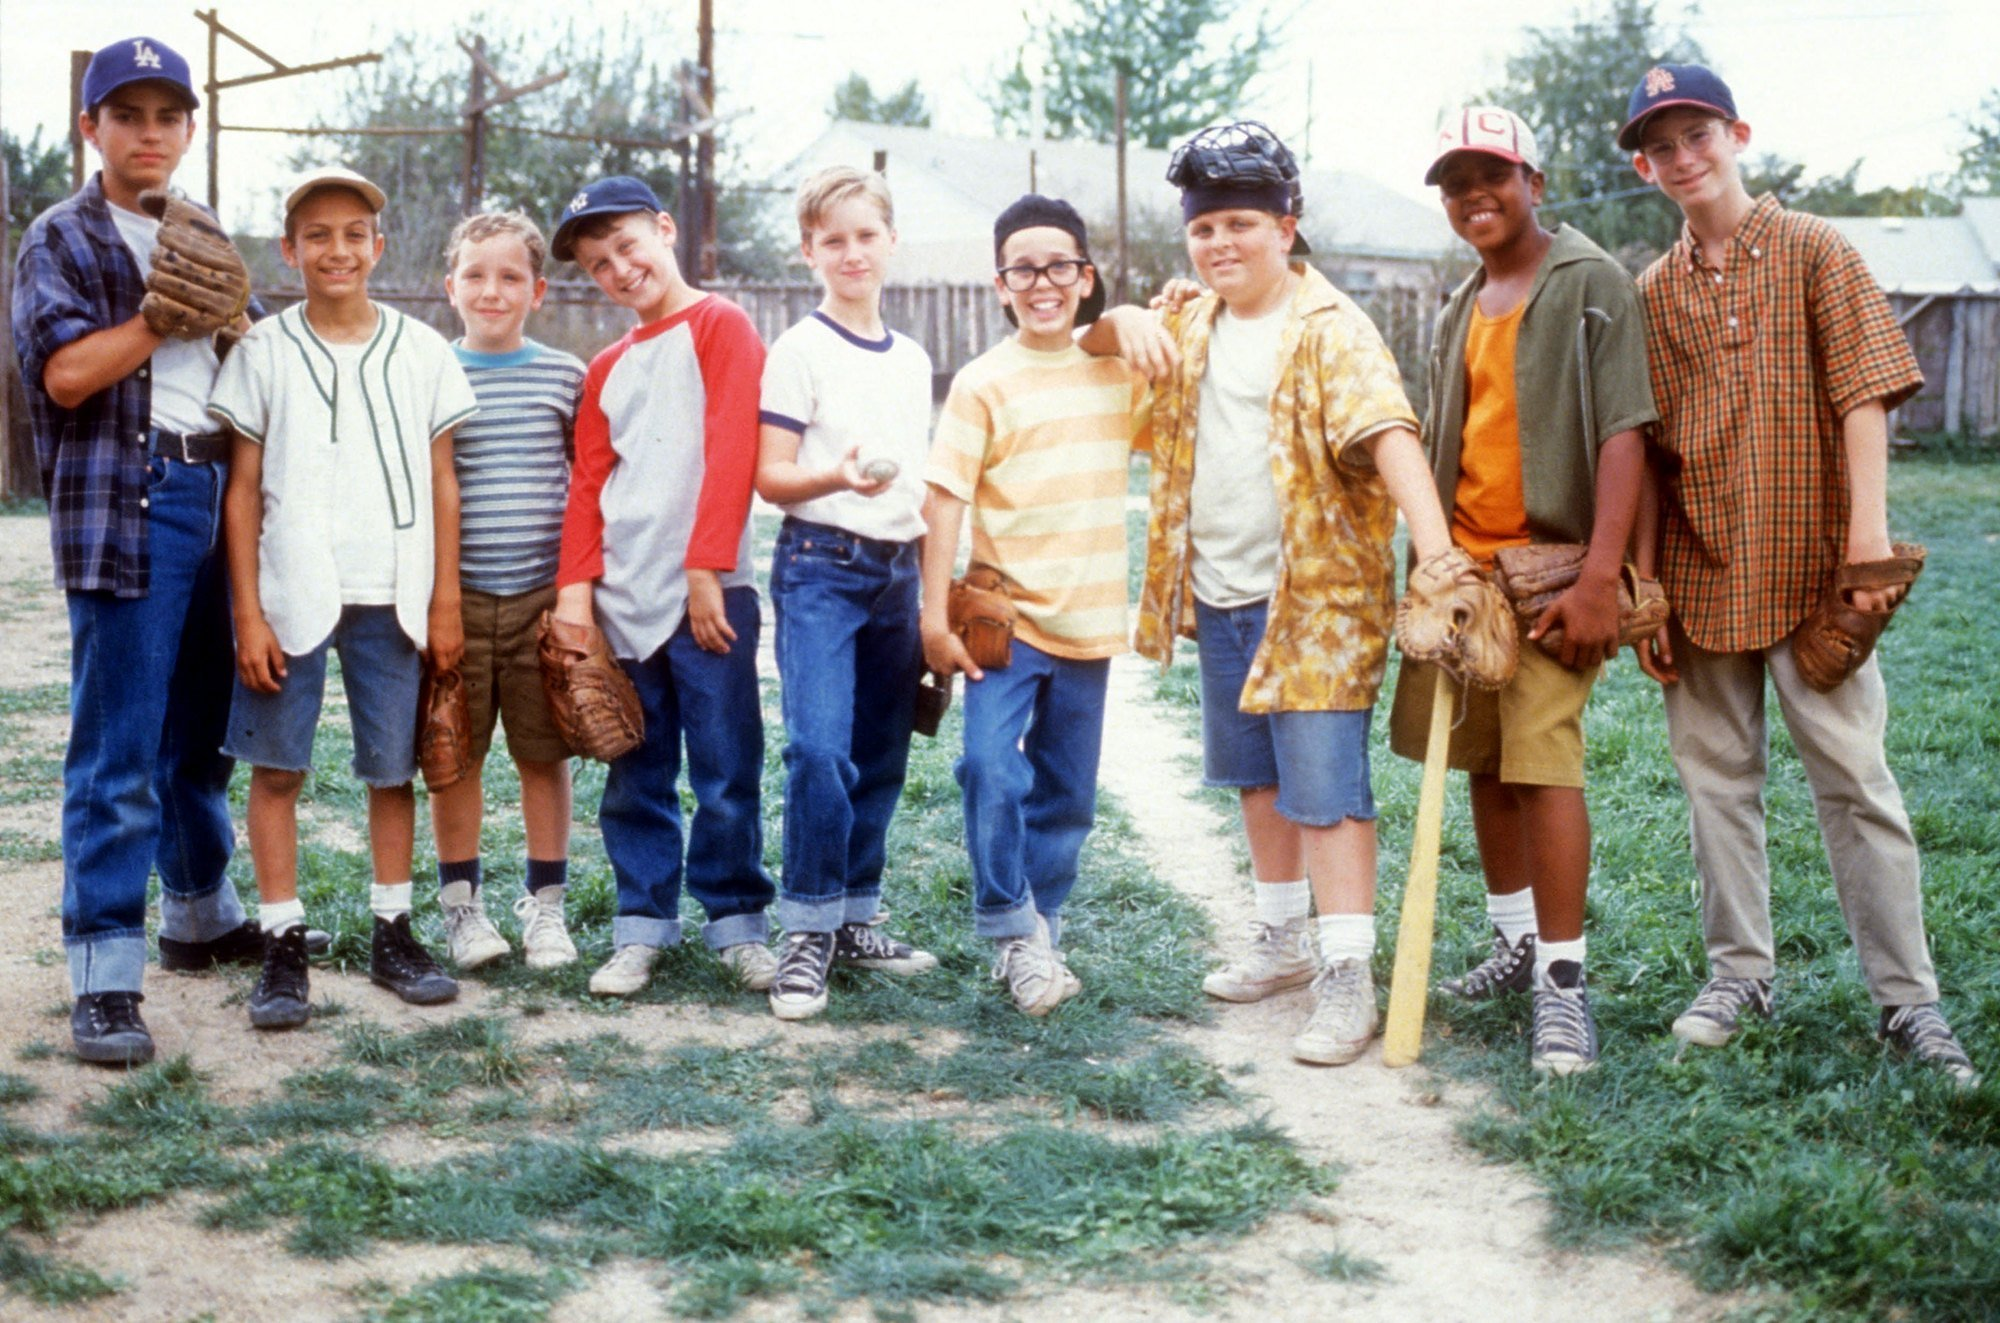 The Sandlot' Cast: Where Are They Now?